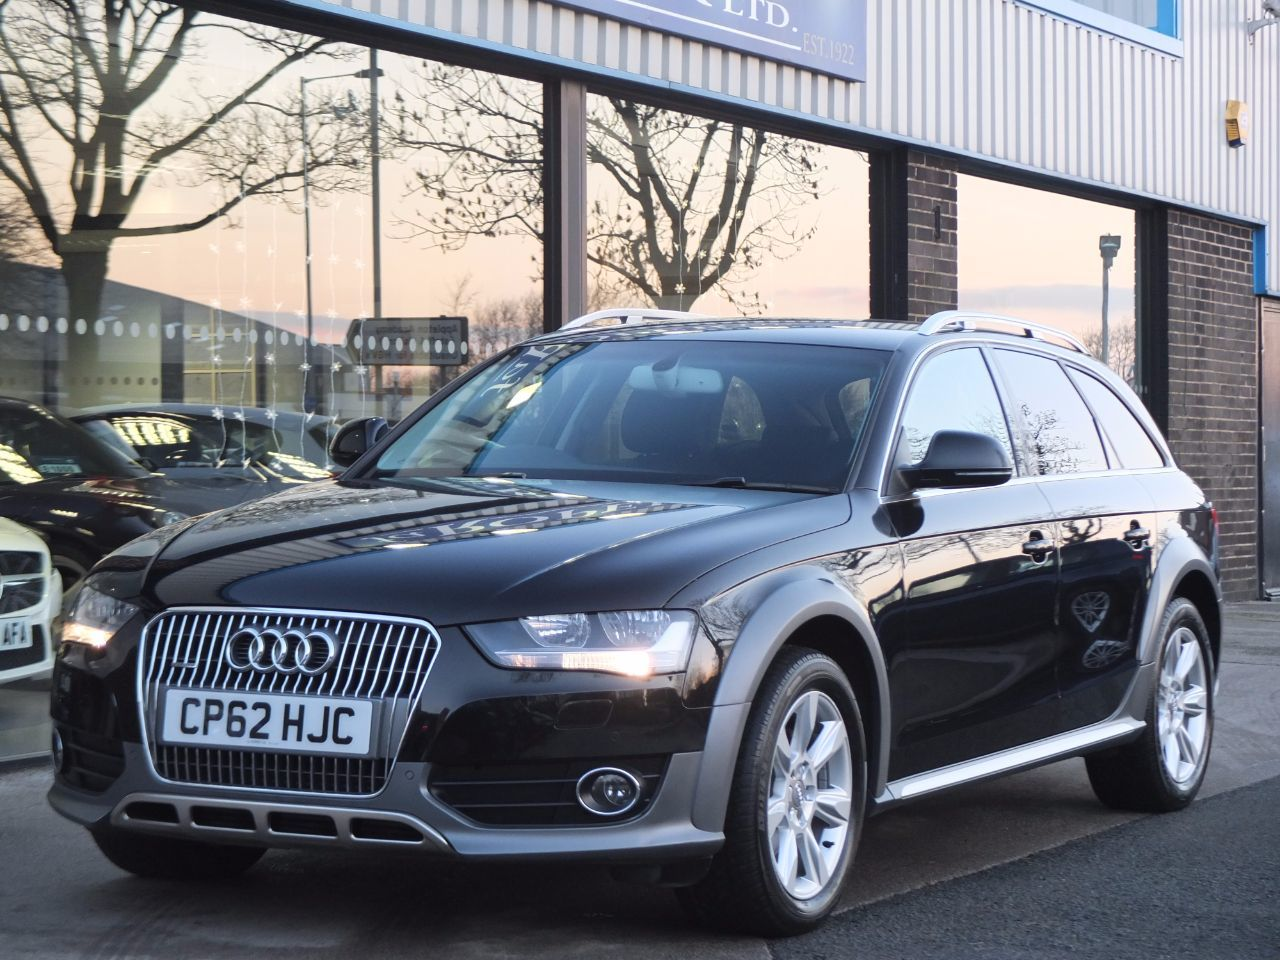 used audi a4 allroad 2 0 tdi quattro s tronic 177ps for sale in bradford west yorkshire fa. Black Bedroom Furniture Sets. Home Design Ideas